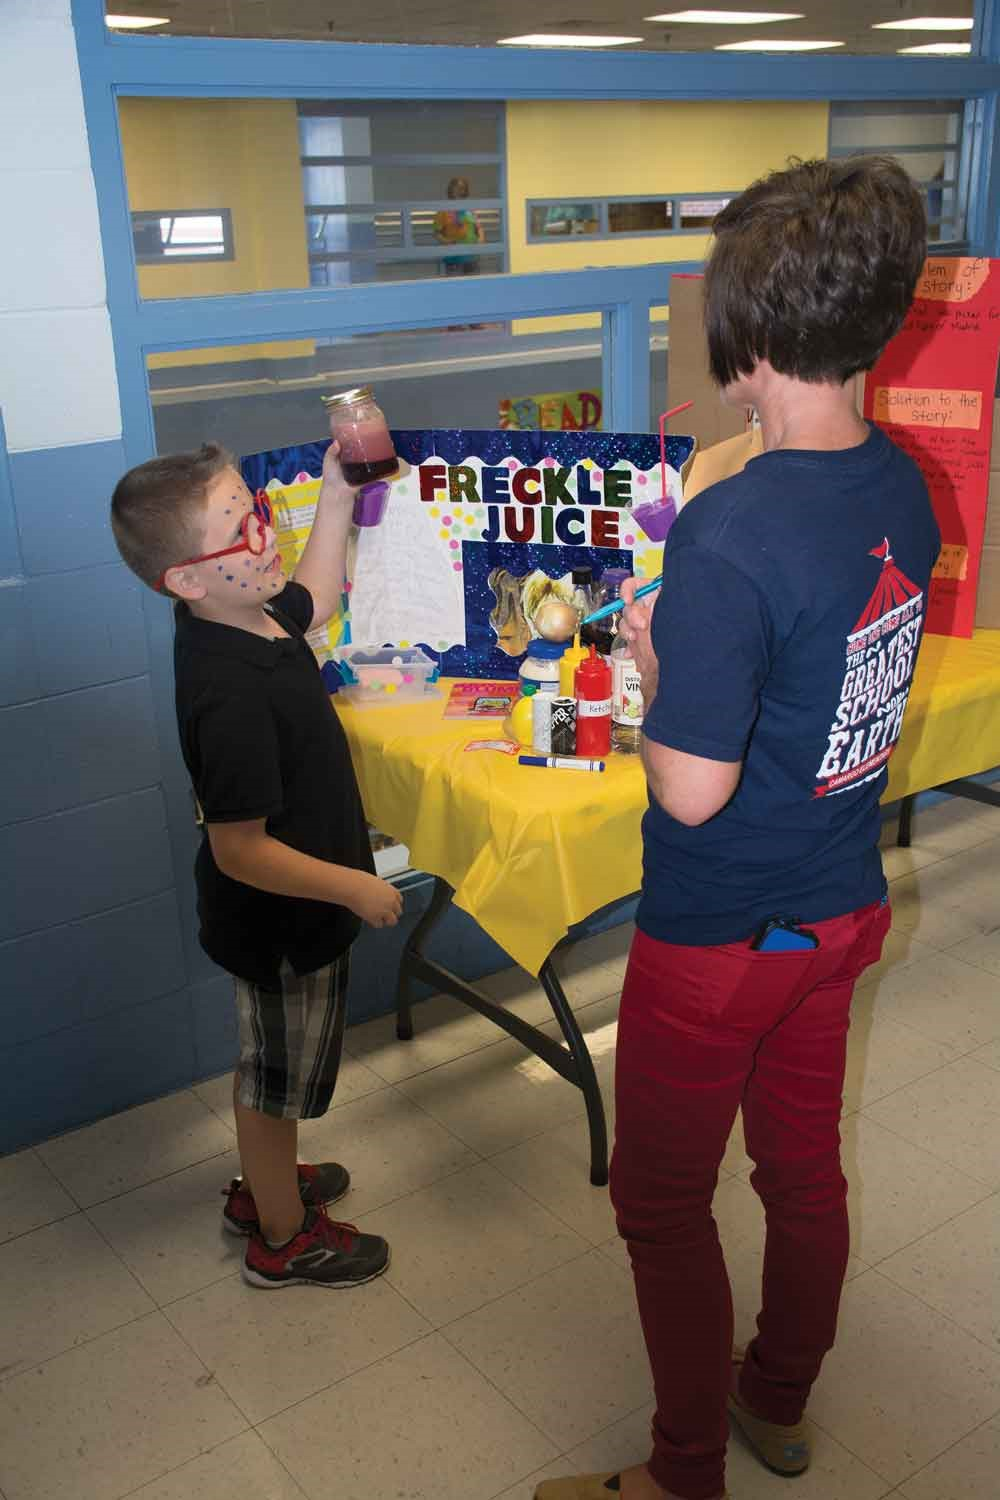 Projects were judged by several staff members, including the school's reading interventionist Tammy Jo White. Third-grade student Keegan Miller, who chose Freckle Juice for his project, shows White the homemade freckle juice he made for the event.